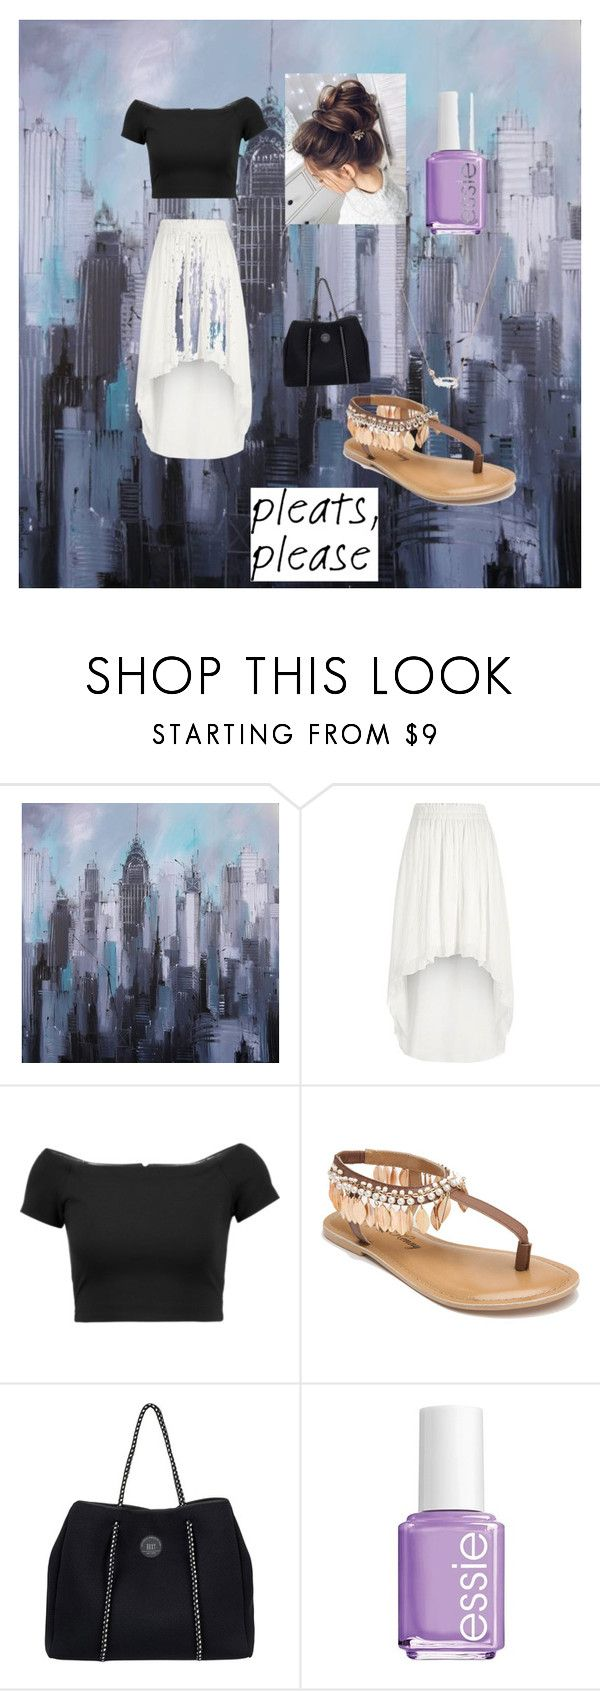 """Untitled #16"" by katlynmac ❤ liked on Polyvore featuring River Island, Alice + Olivia, Penny Loves Kenny, Roxy, Essie and Kendra Scott"